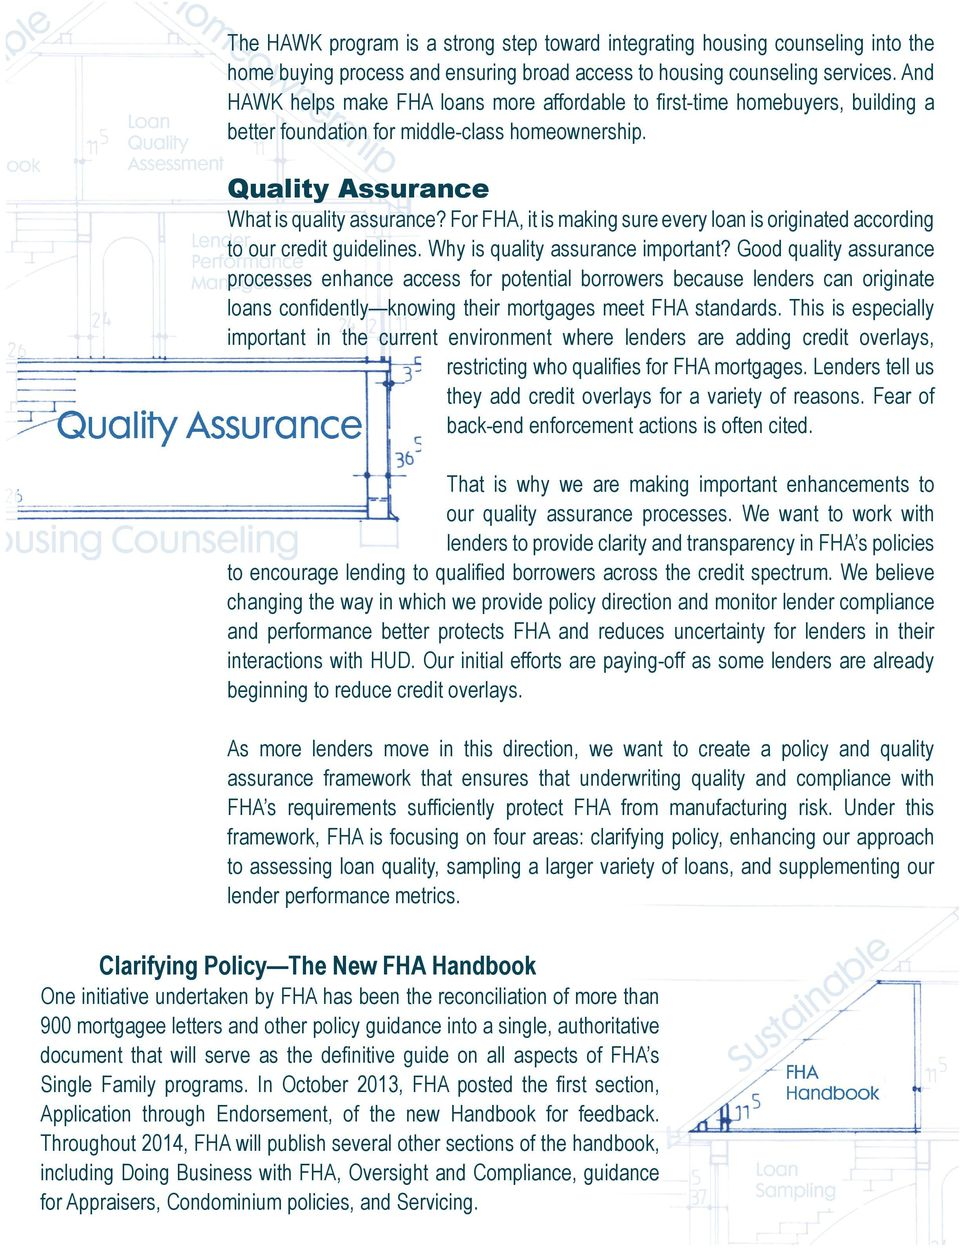 For FHA, it is making sure every loan is originated according to our credit guidelines. Why is quality assurance important?